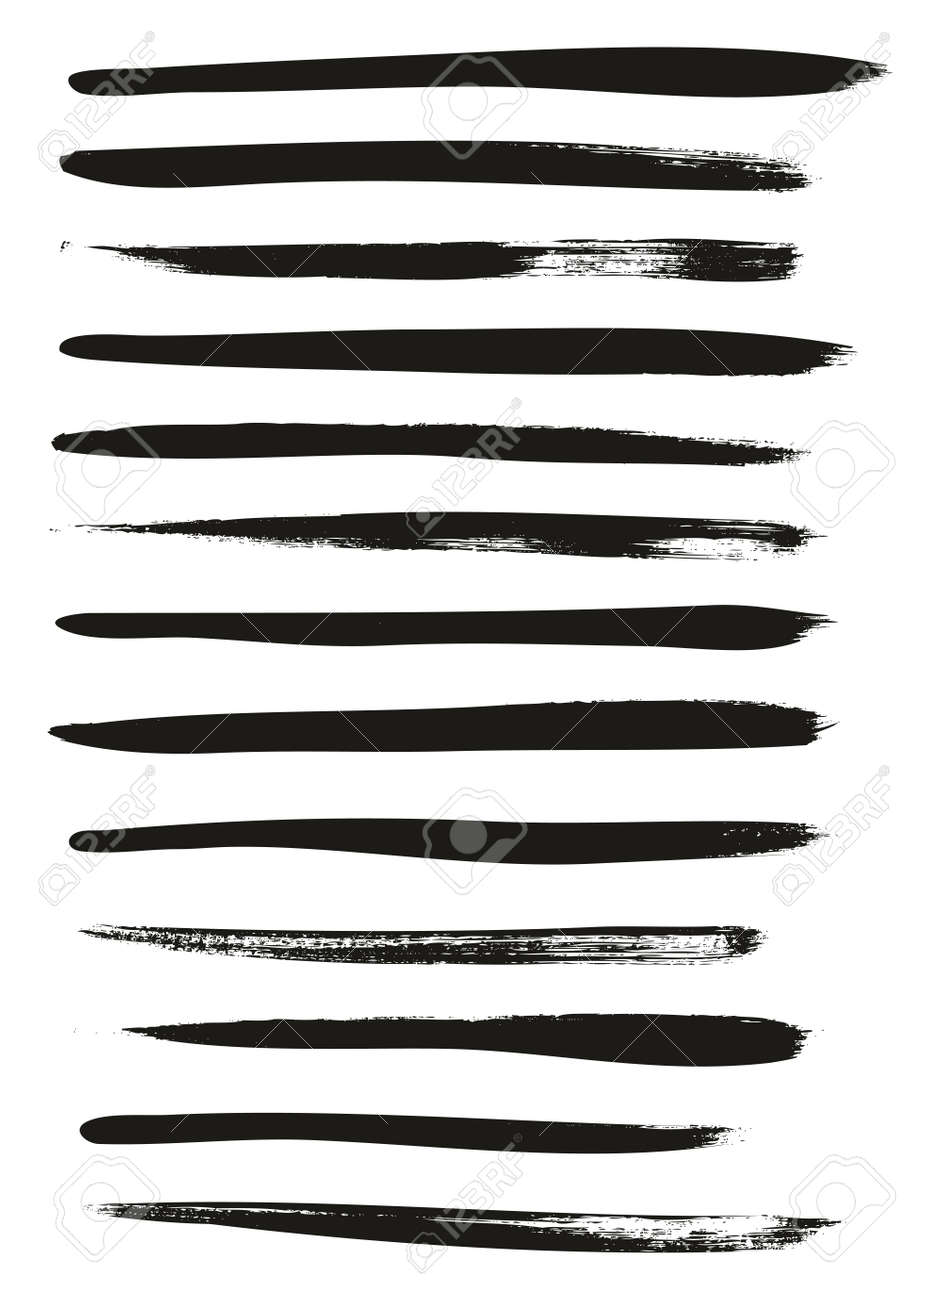 Calligraphy Paint Thin Brush Lines High Detail Abstract Vector Background - 125625760